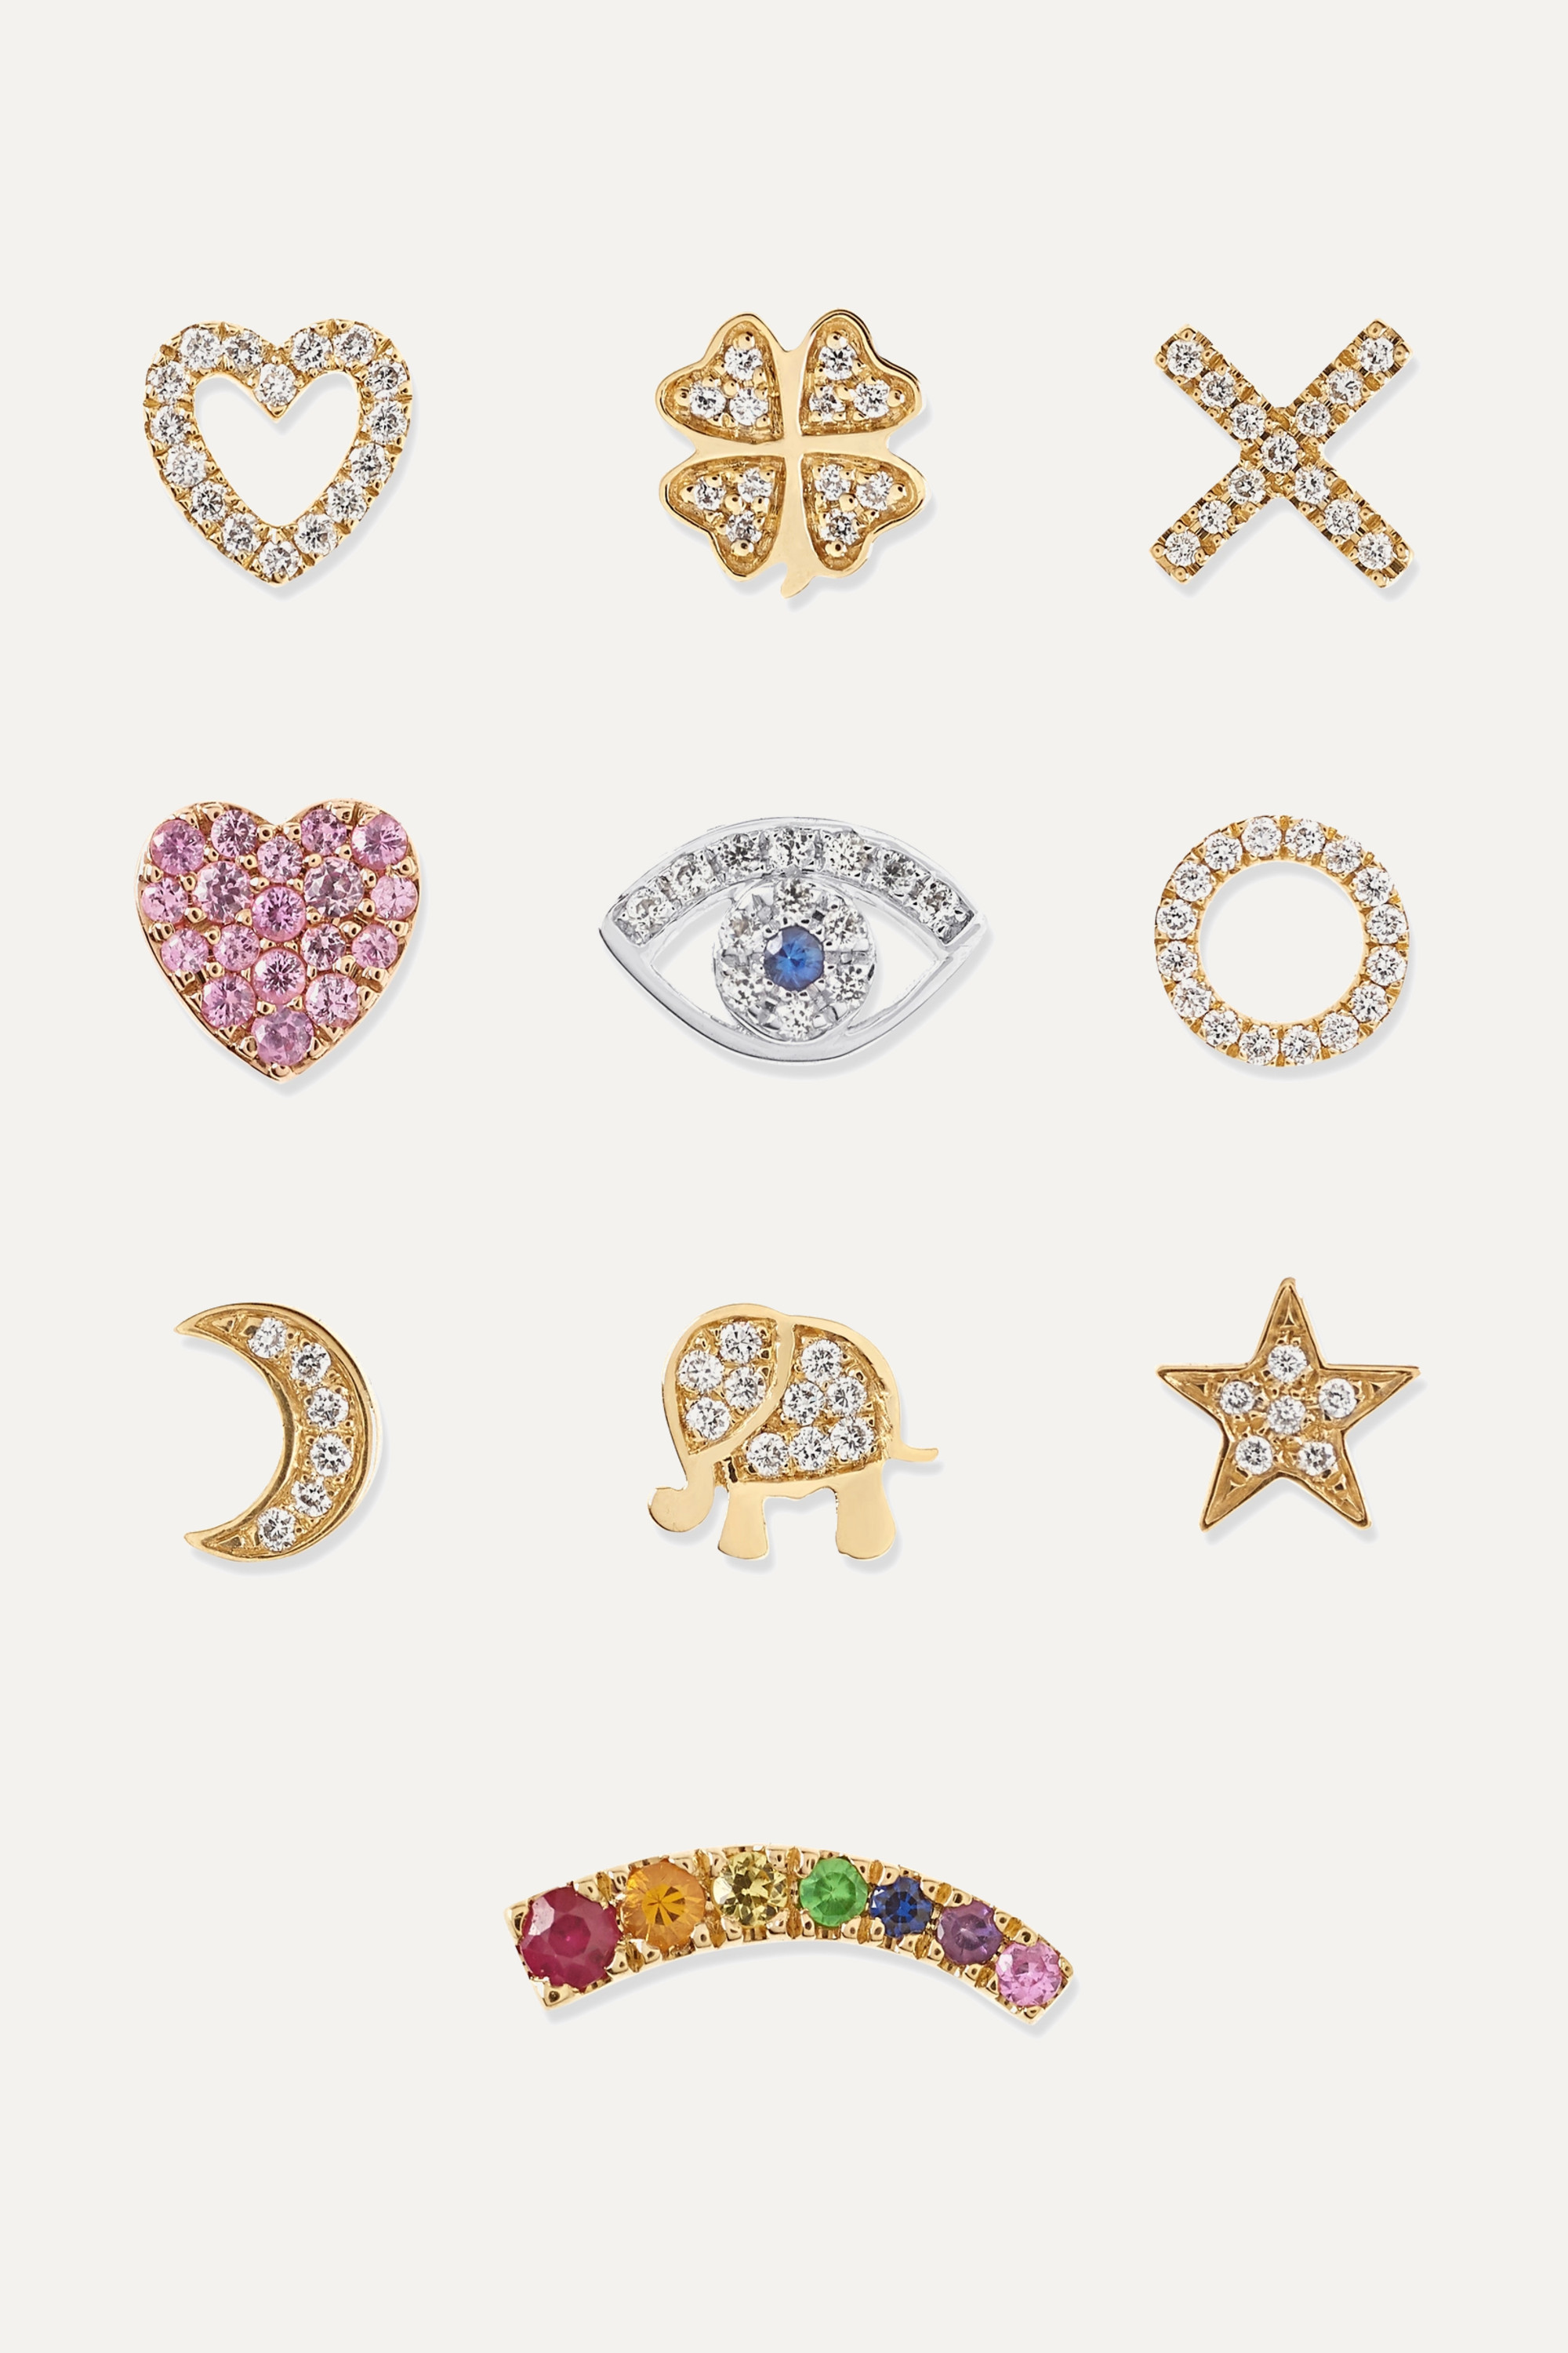 Loquet Send a Kiss 18-karat yellow and white gold diamond and sapphire charms